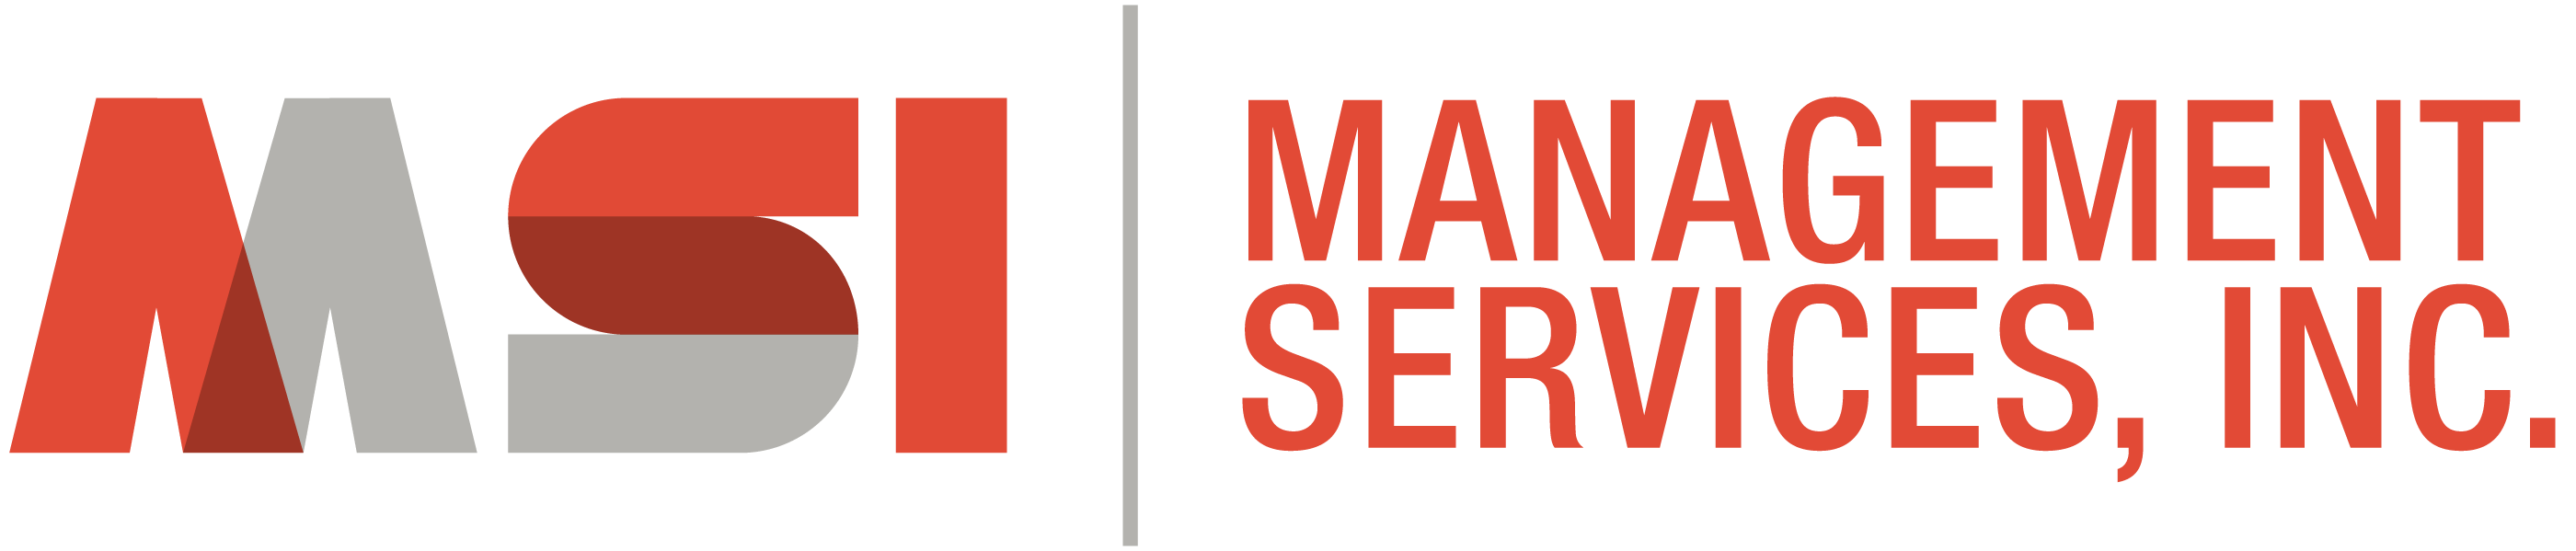 MSI Management Services, Inc.